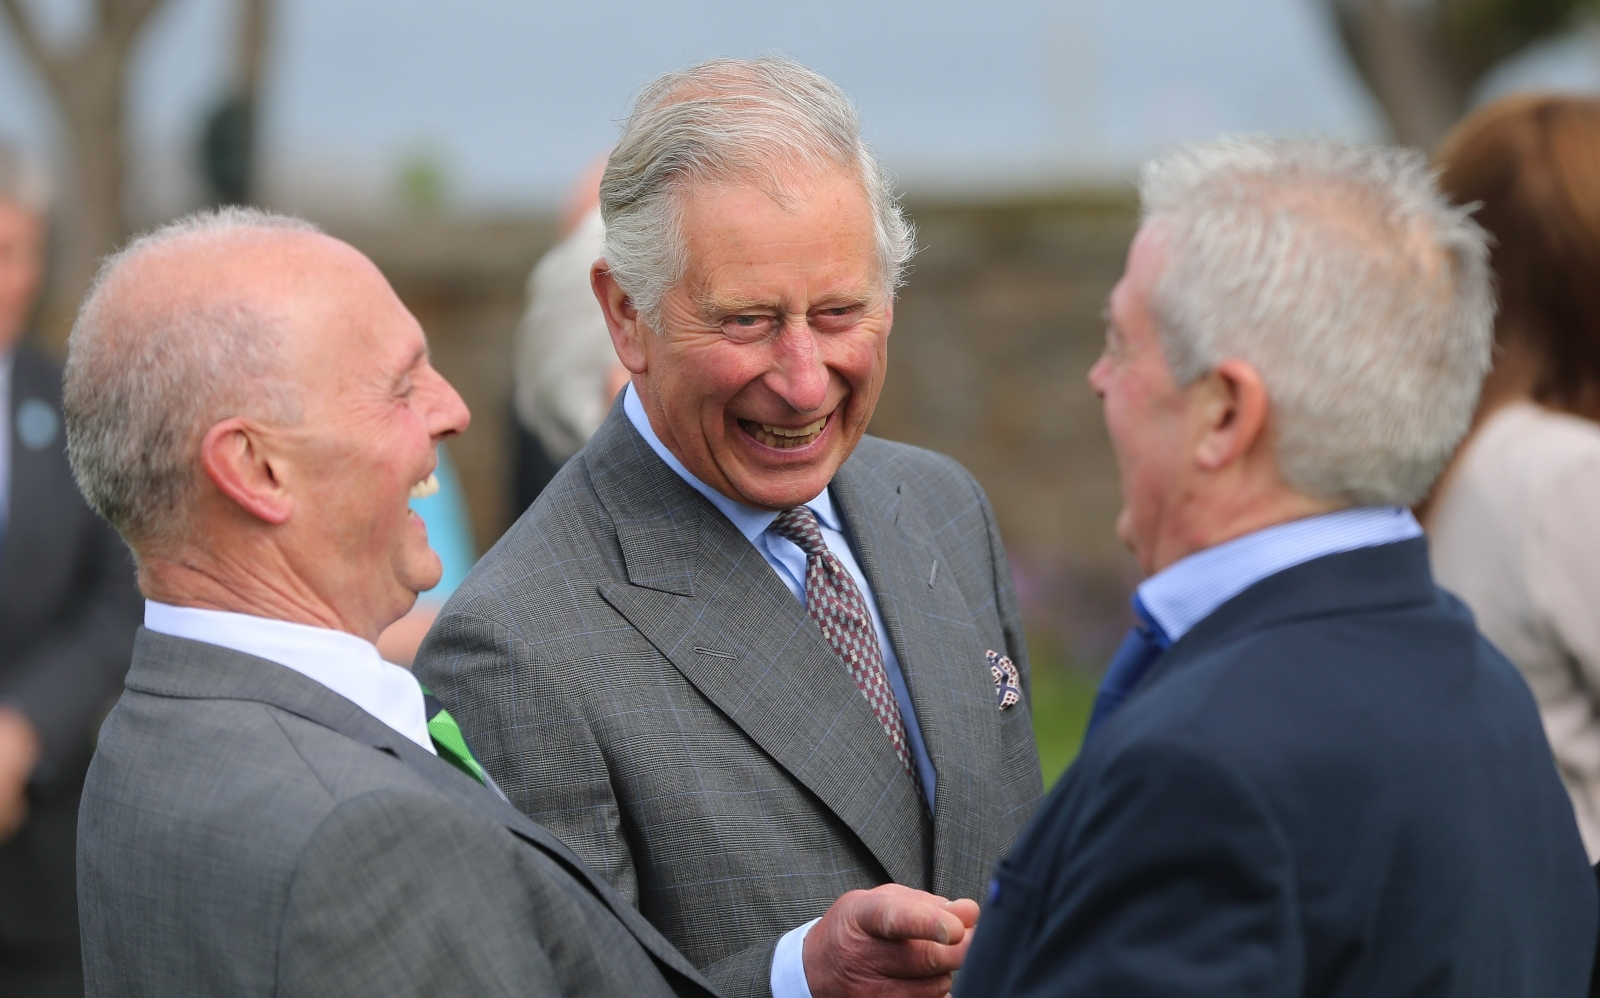 Prince Charles, Prince of Wales laughs as he is introduced to Lord Mountbatten's former staff by Peter McHugh (L) during a visit to the peace garden on May 20, 2015 in Sligo, Ireland